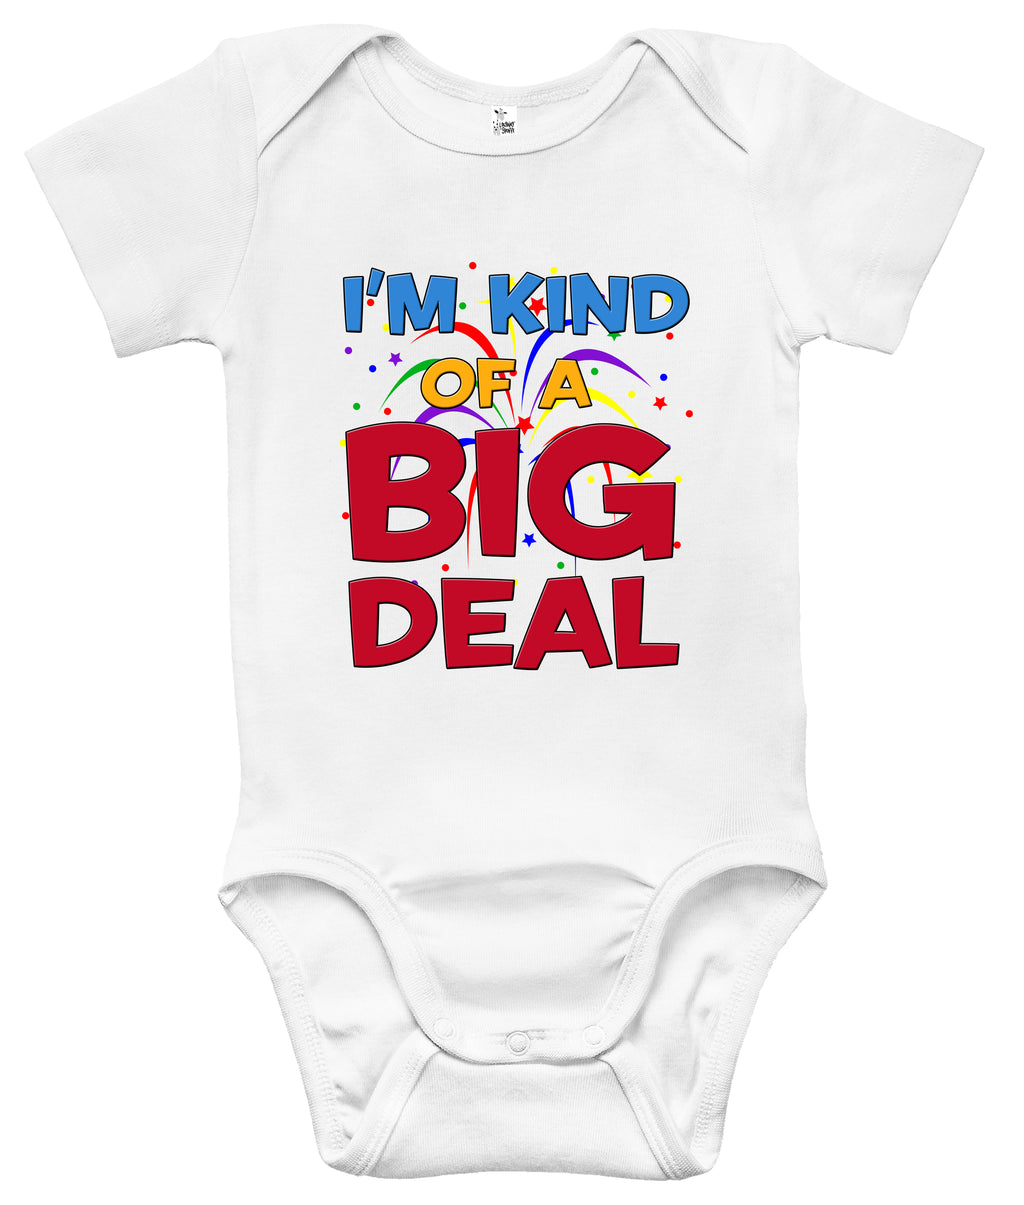 Baby Bodysuit - I'm Kind of a Big Deal